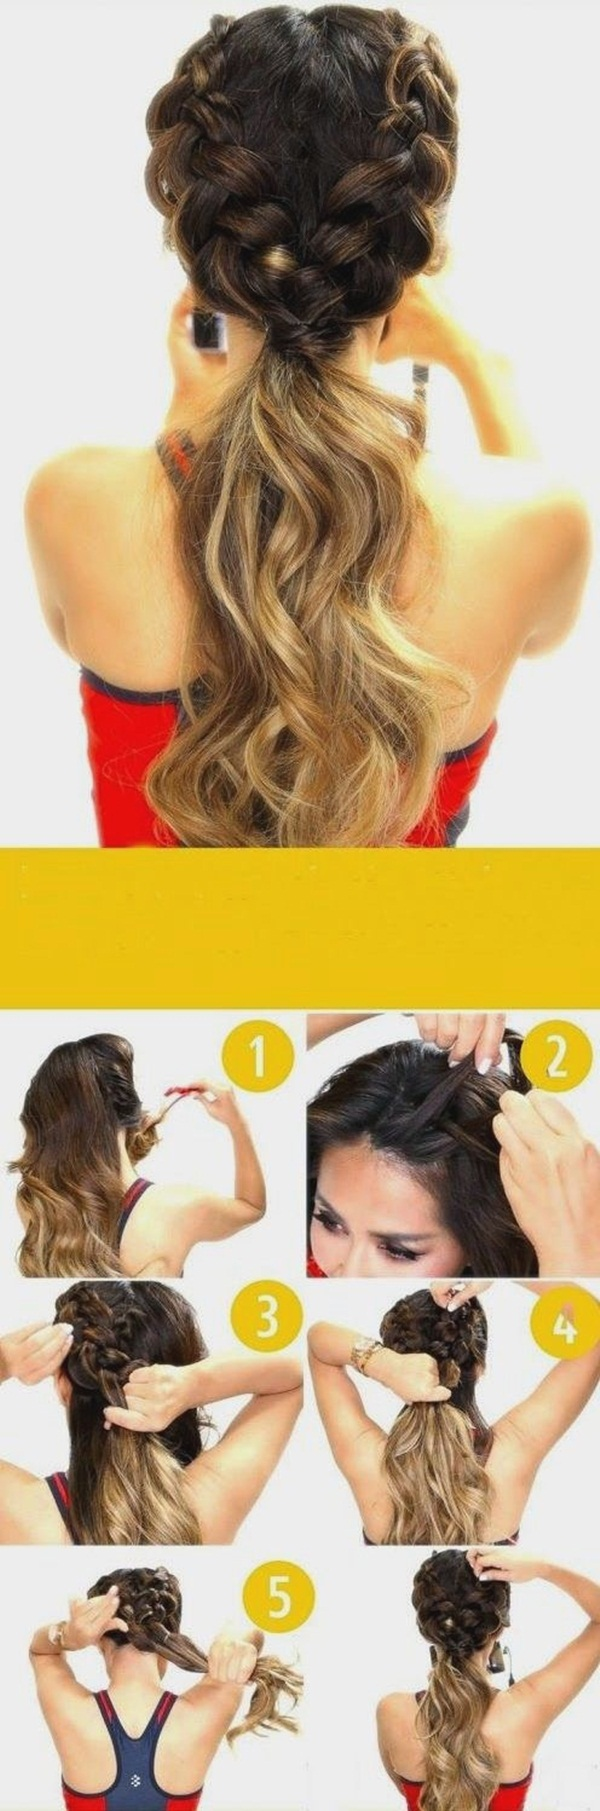 ways to style hair for school 40 easy hairstyles for schools to try in 2016 6507